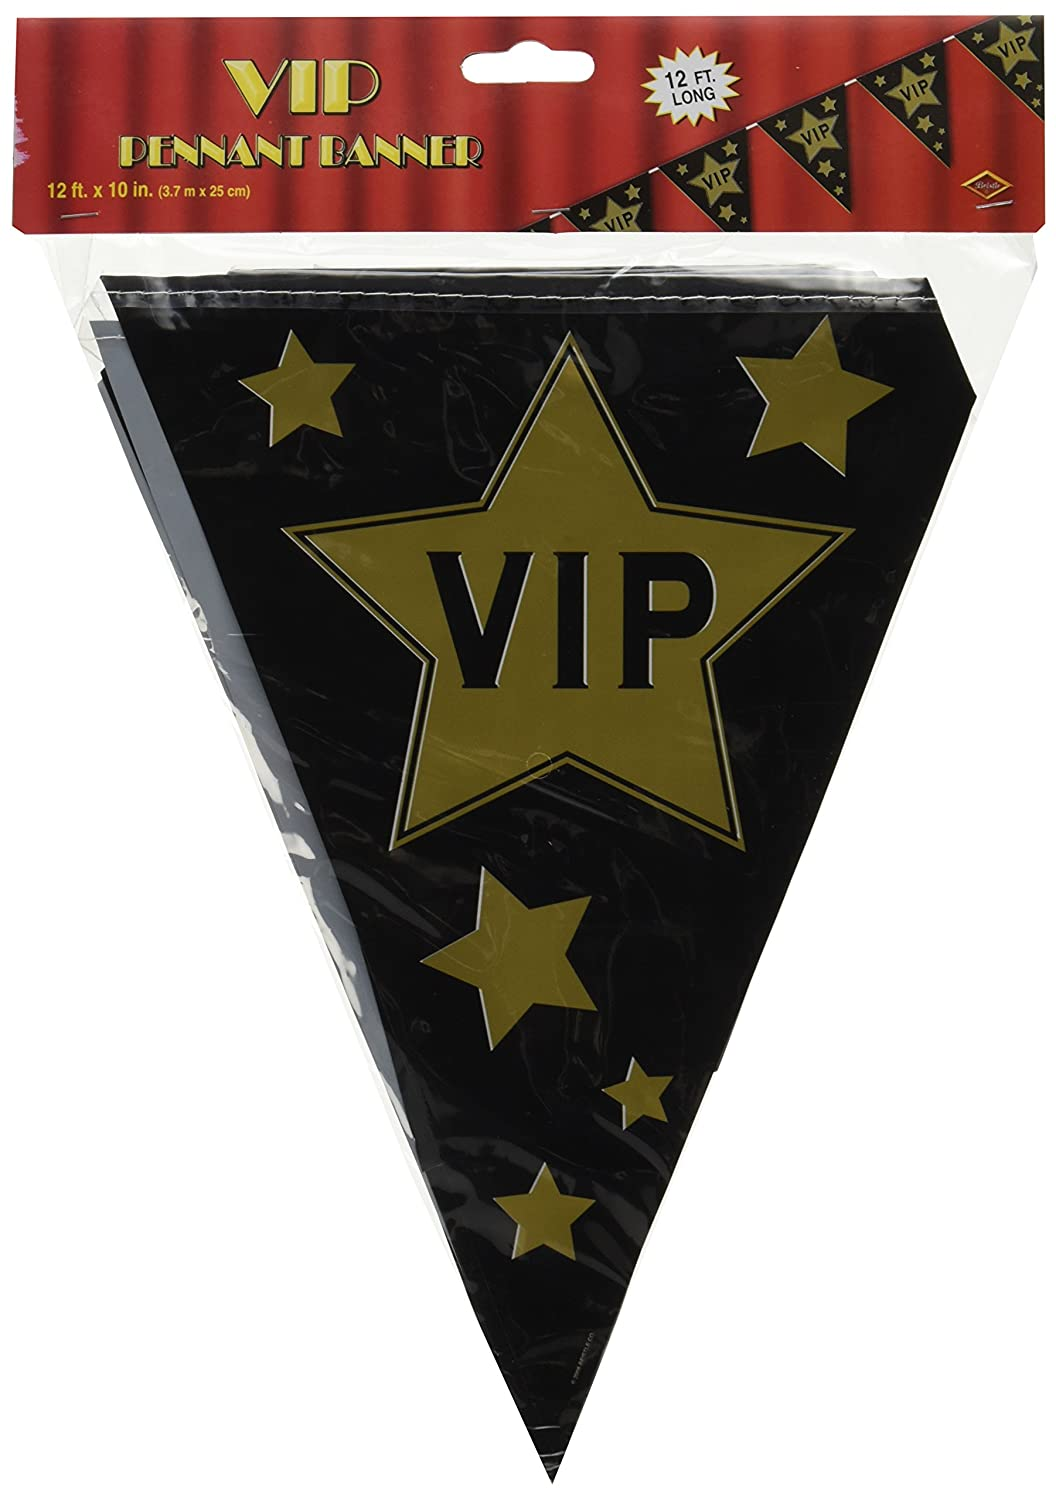 Beistle 57513 1-Pack VIP Pennant Banner The Beistle Company